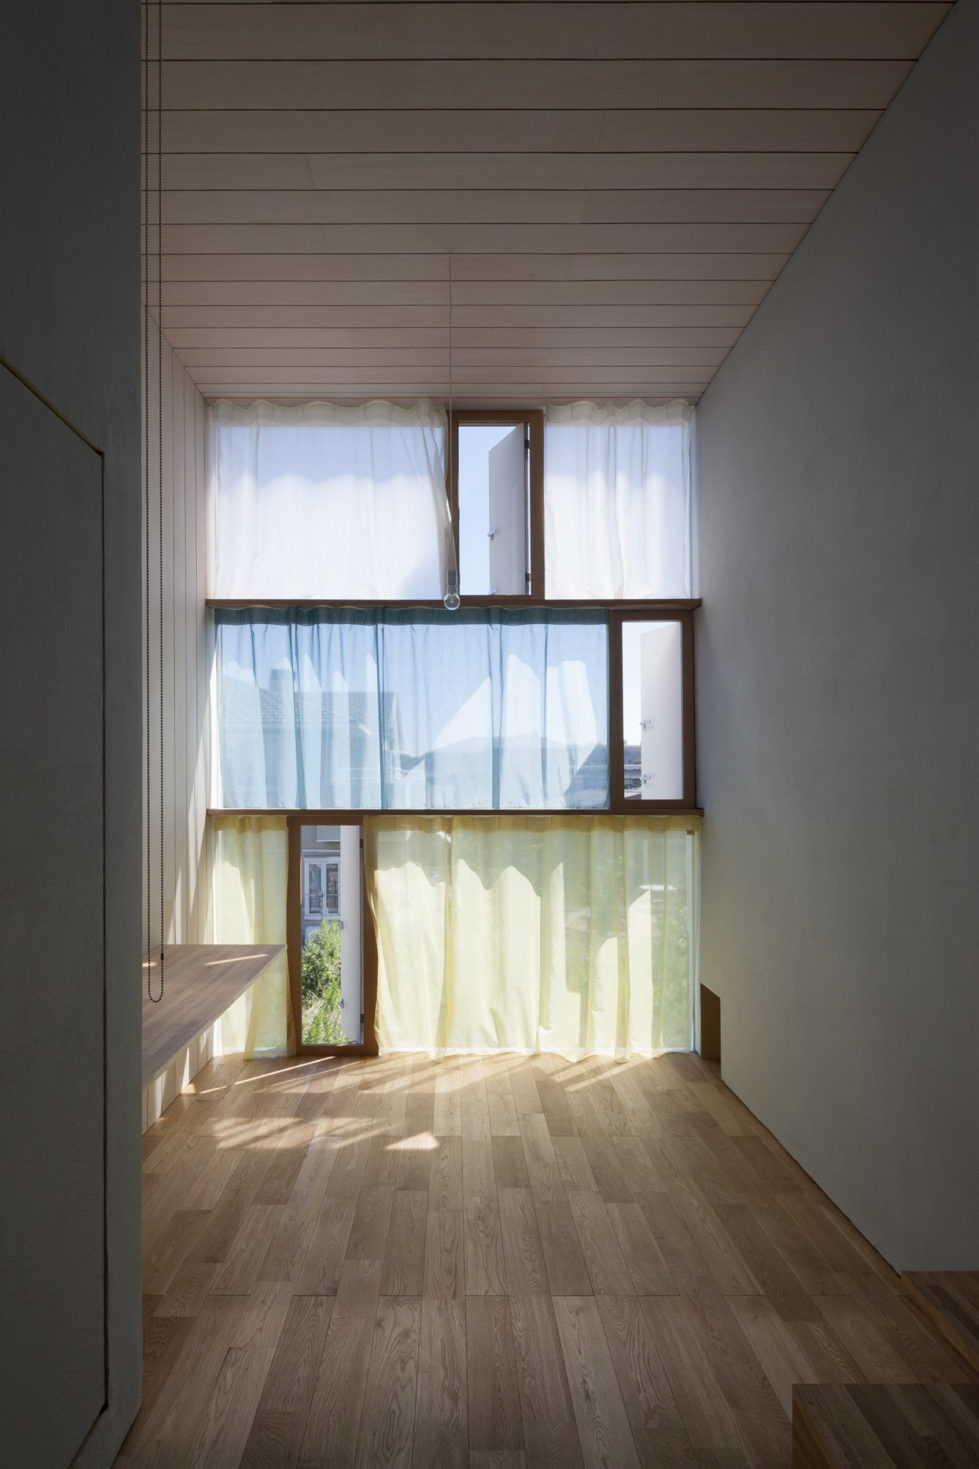 The family idyll in Japan from the Ihrmk studio 6